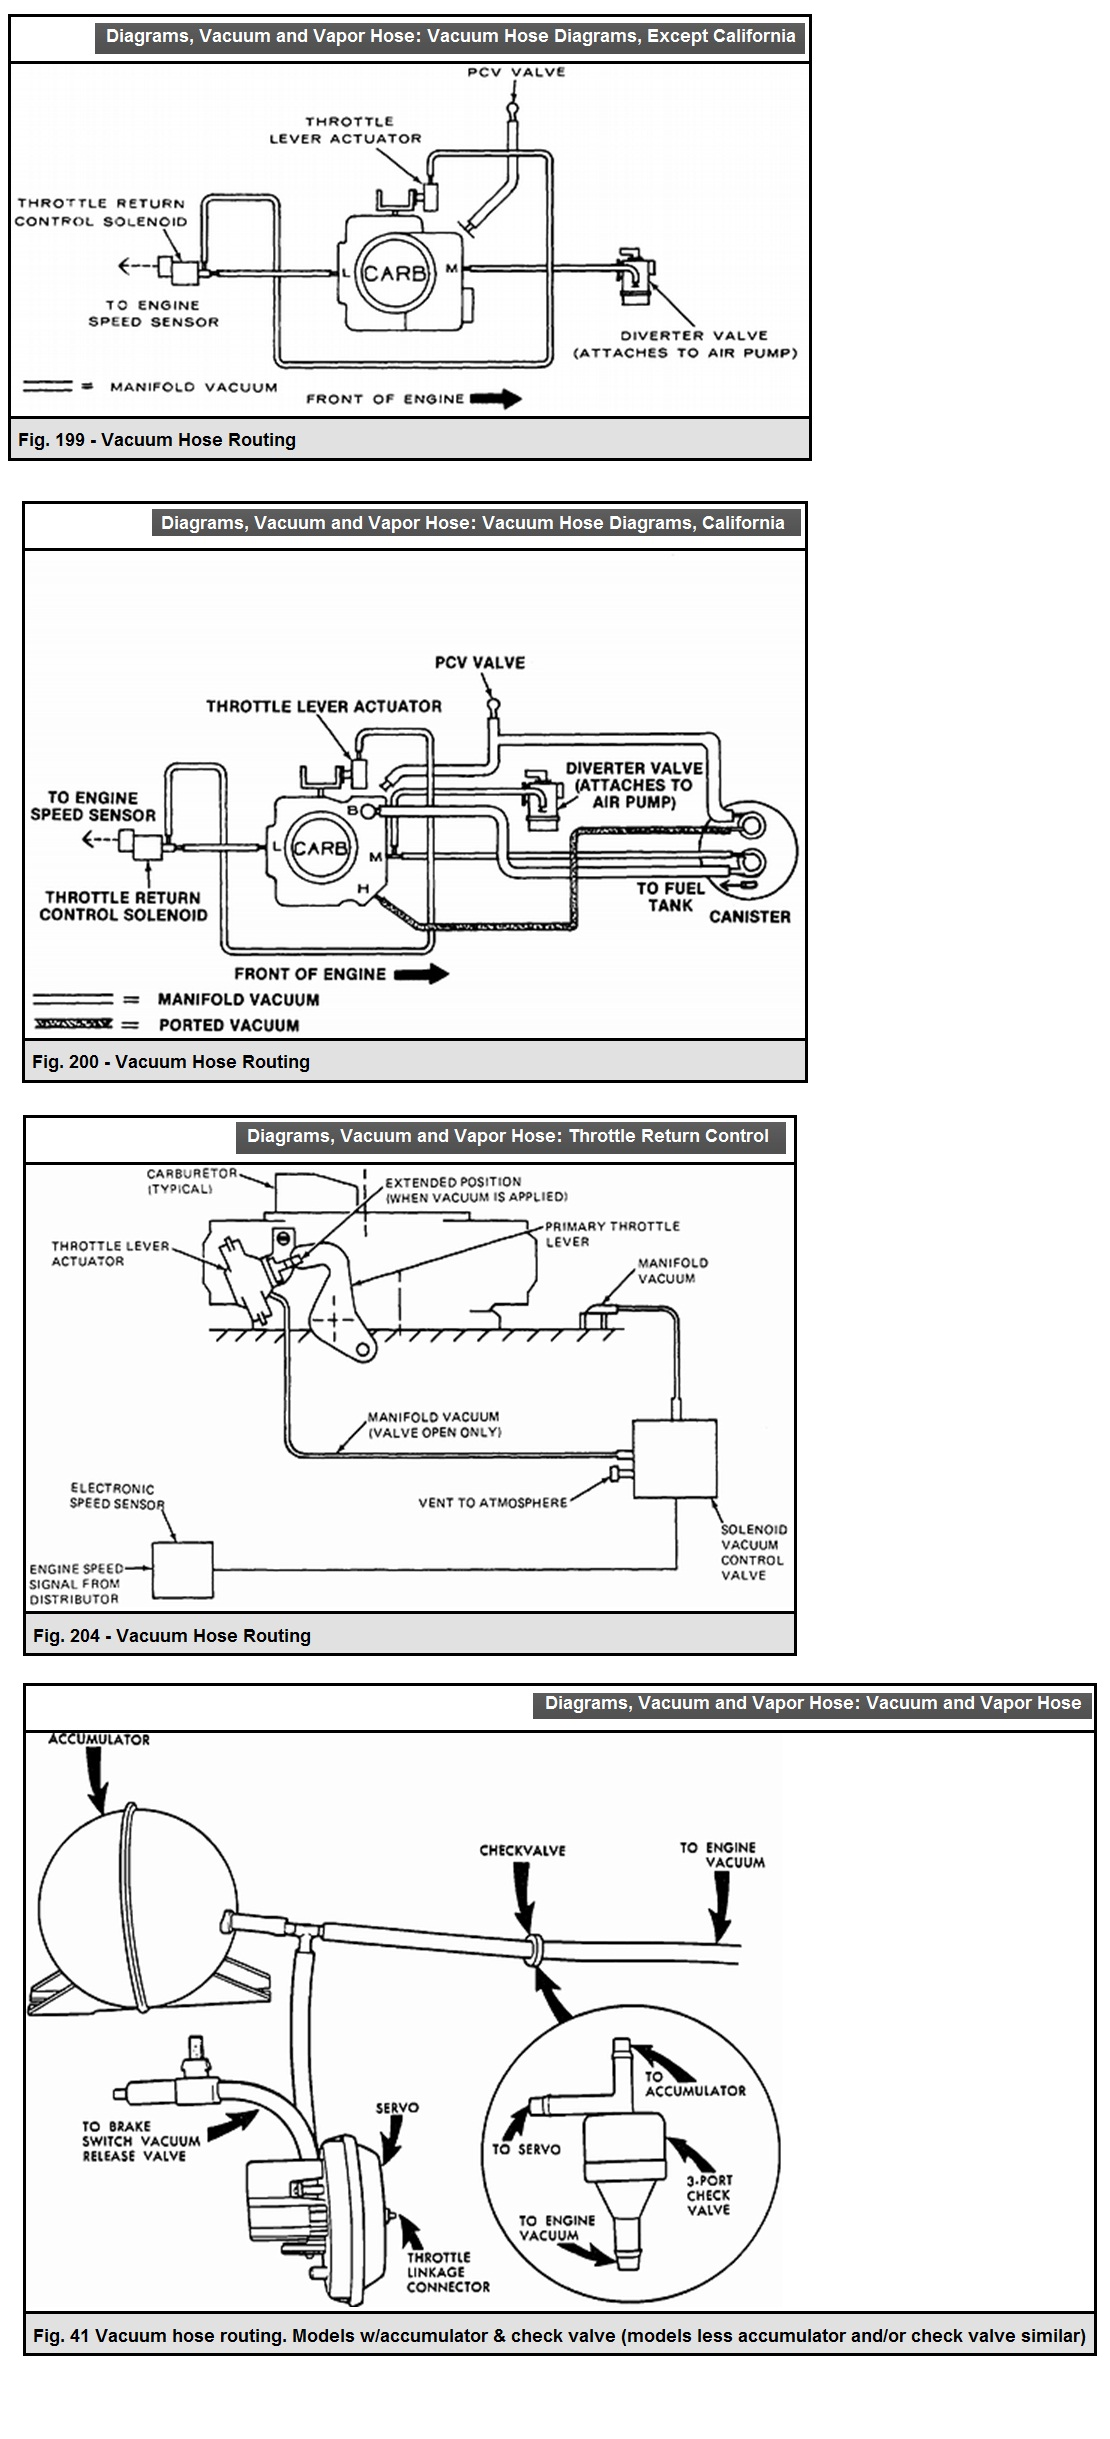 Gmc Vacuum Lines Diagram Circuit Wiring And Hub Saturn I Need A Line For 1982 Truck W Ac Rh Justanswer Com Diagrams Chevy 1991 1500 1997 Blazer